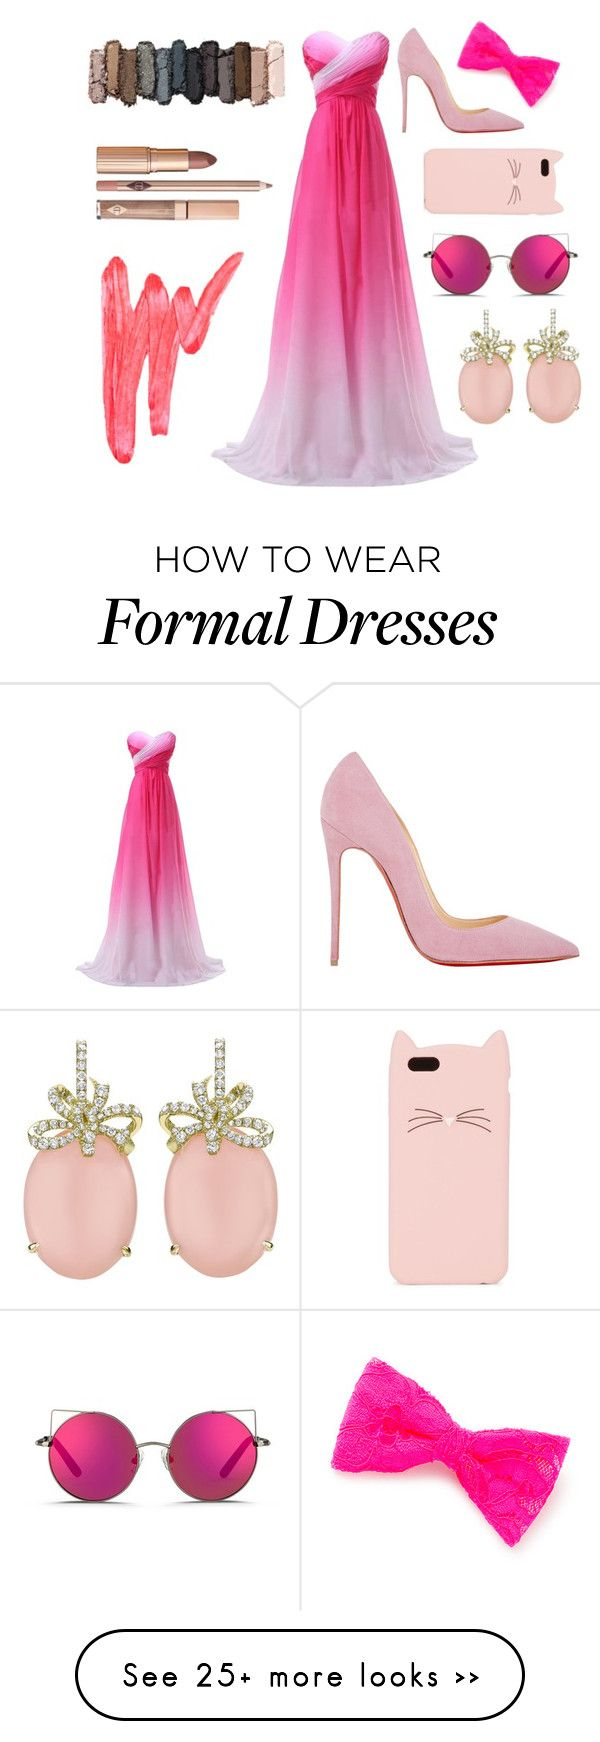 """Pinky pie"" by alexen on Polyvore featuring Christian Louboutin, claire's, Kate Spade, Matthew Williamson, Urban Decay and Ilia"